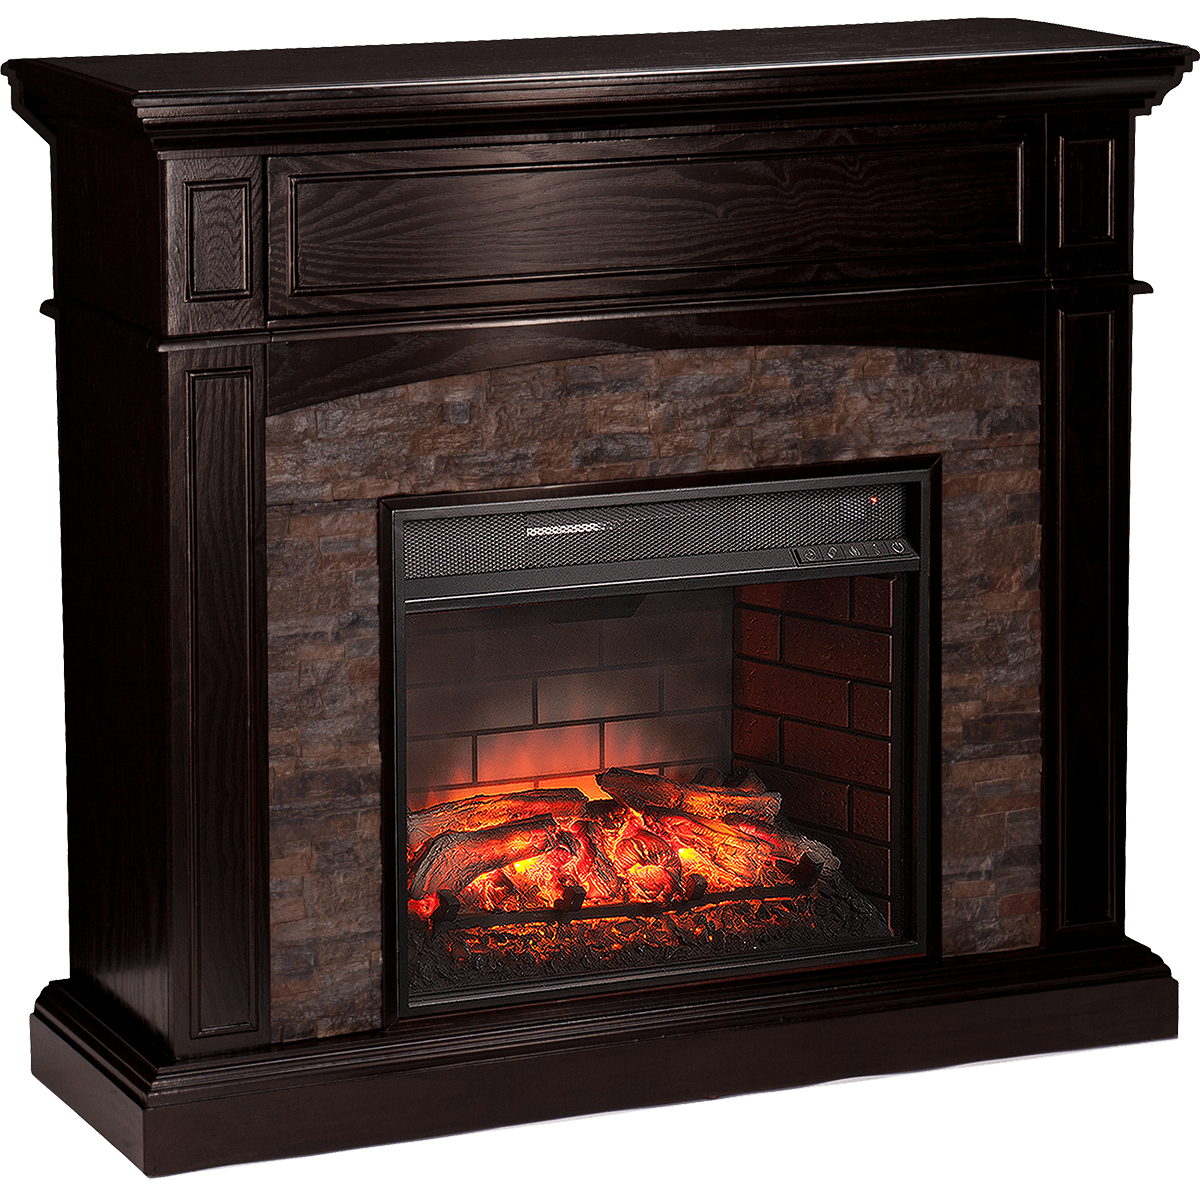 Buy the Southern Enterprises (SEI) Grantham Corner Media Console Fireplace at Sylvane.com today and get Free Shipping & 30-day returns on your order.